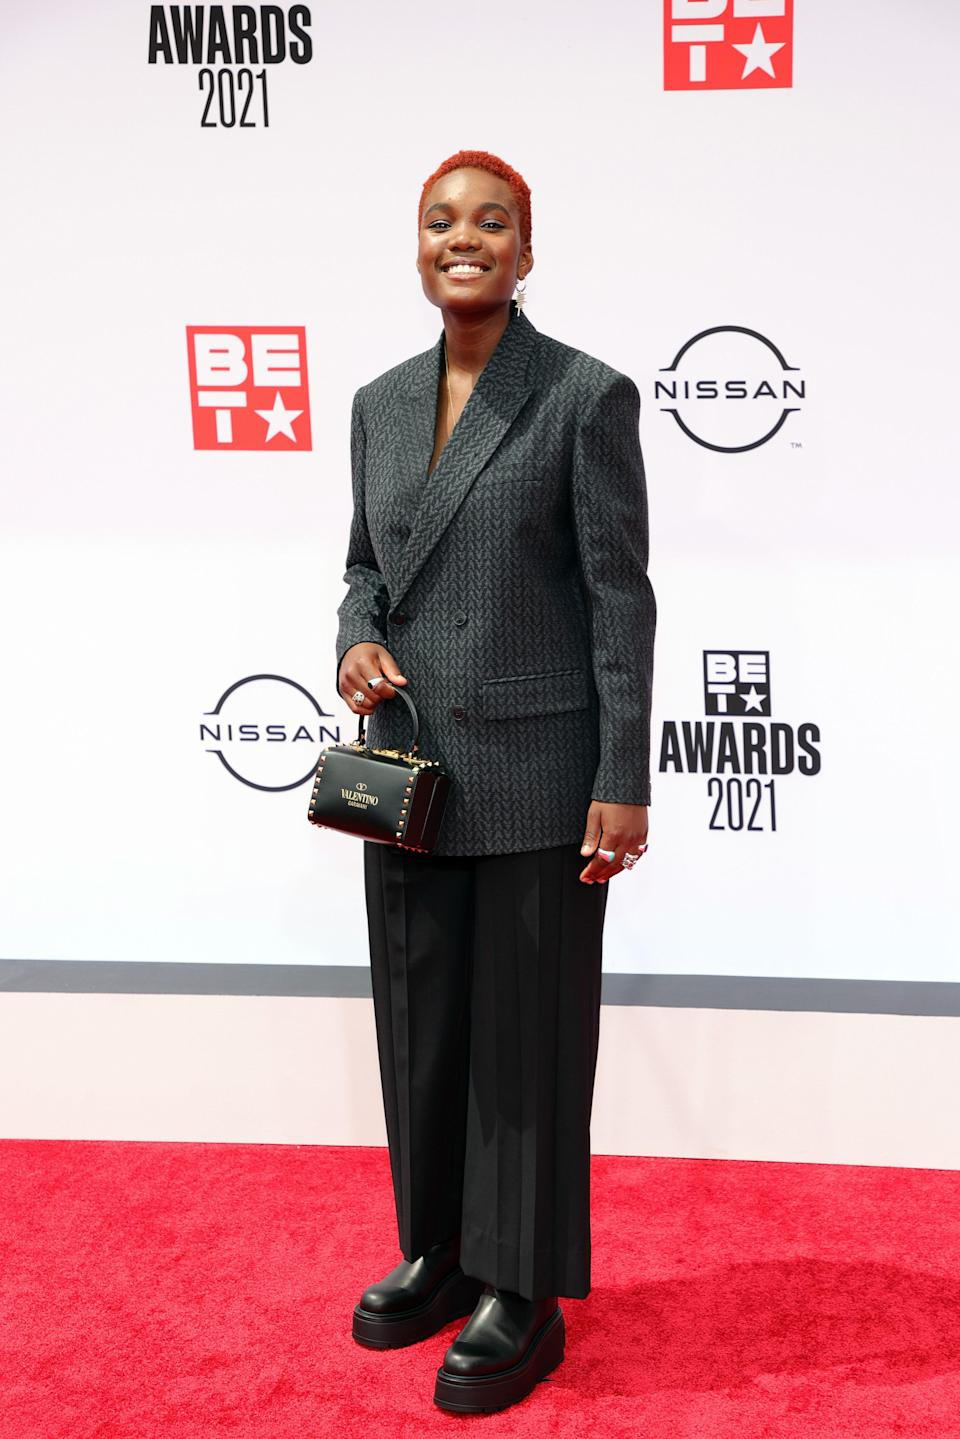 Arlo Parks traveled across the pond and hit the red carpet in a modern take on the classic suit and platform boots. She rounded off the look with a structured Valentino bag.